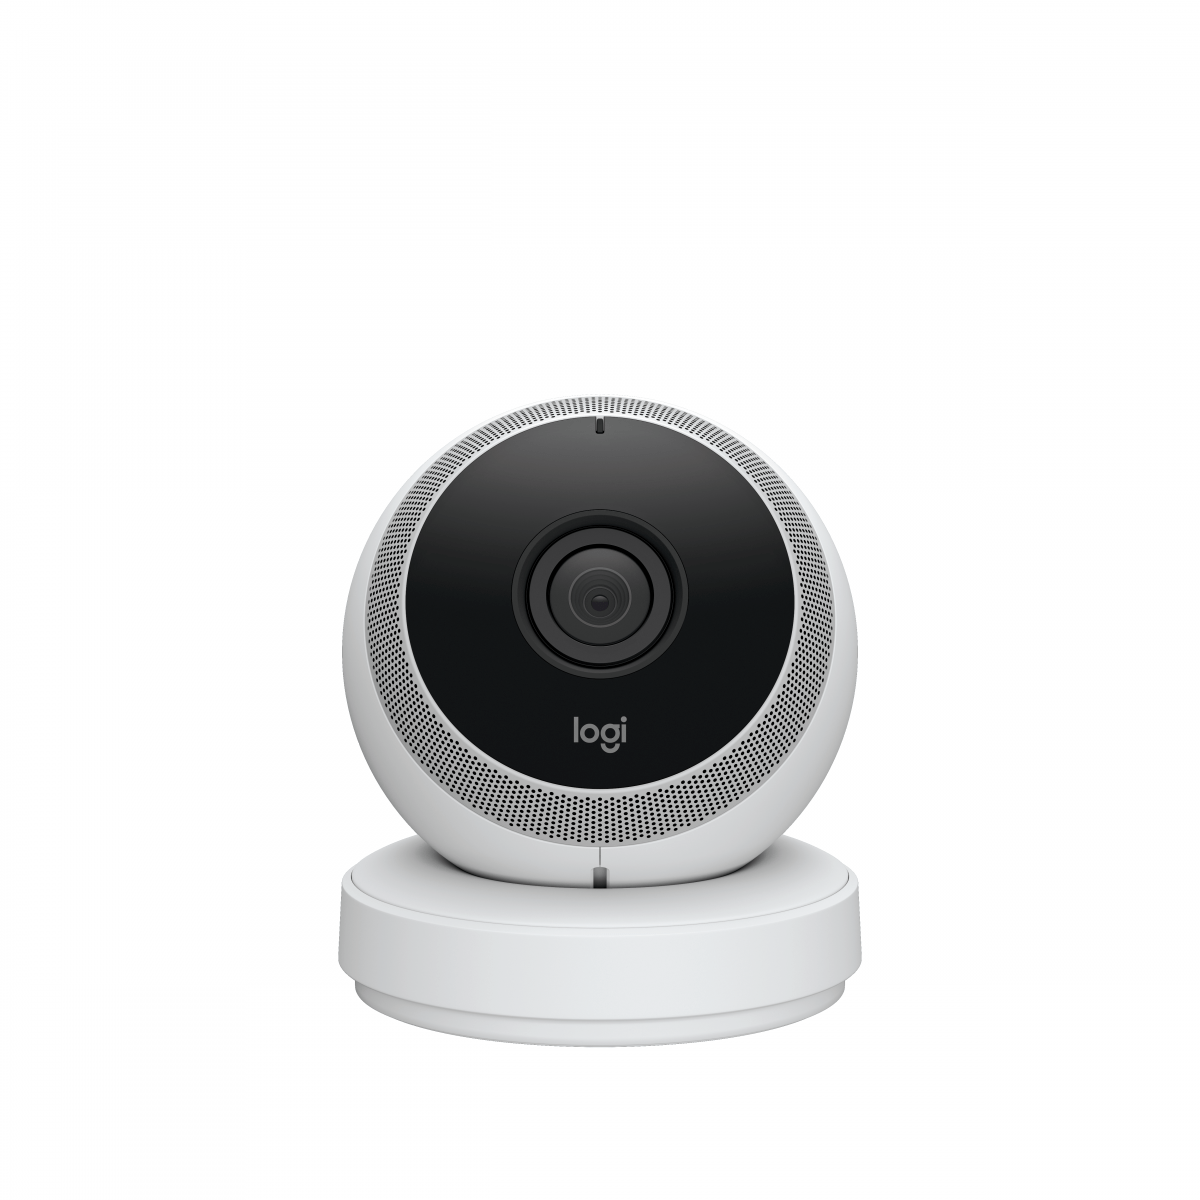 Camera Exterieur Logitech Logitechs New Logi Circle Camera Is A Promising Home